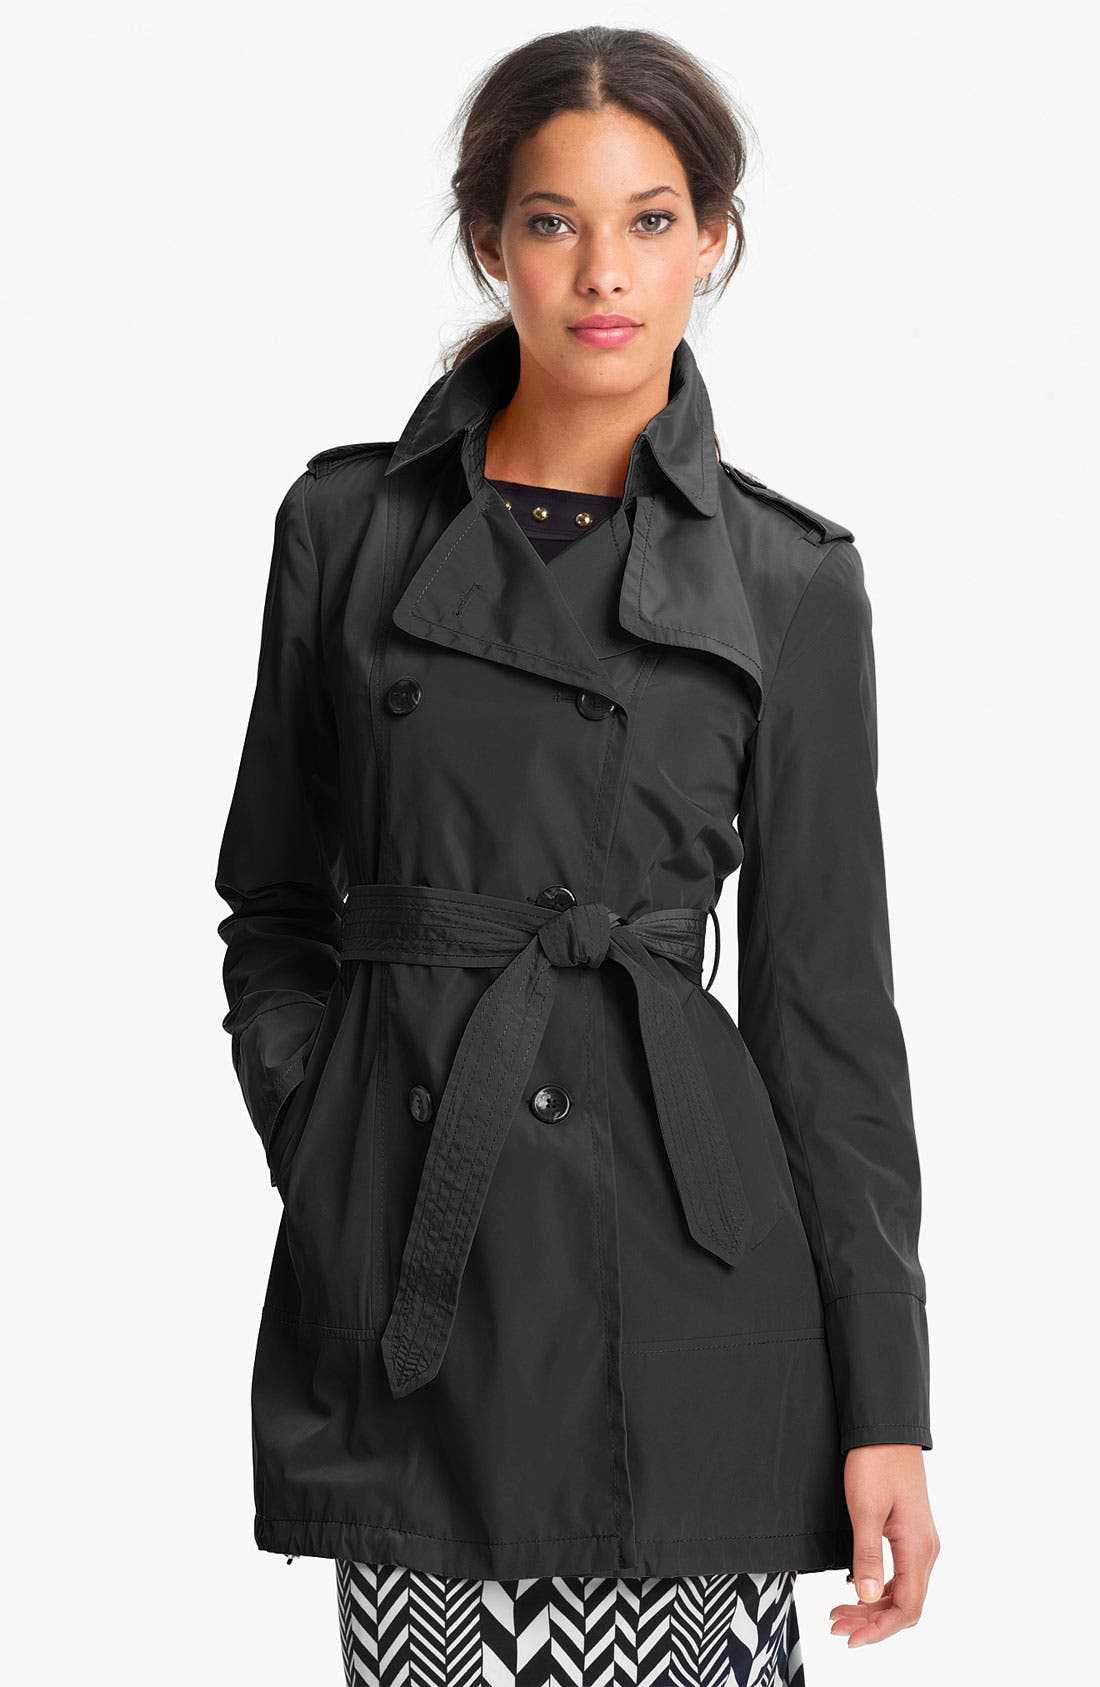 Alternate Image 1 Selected - Vince Camuto 'Heidi' Double Breasted Trench Coat